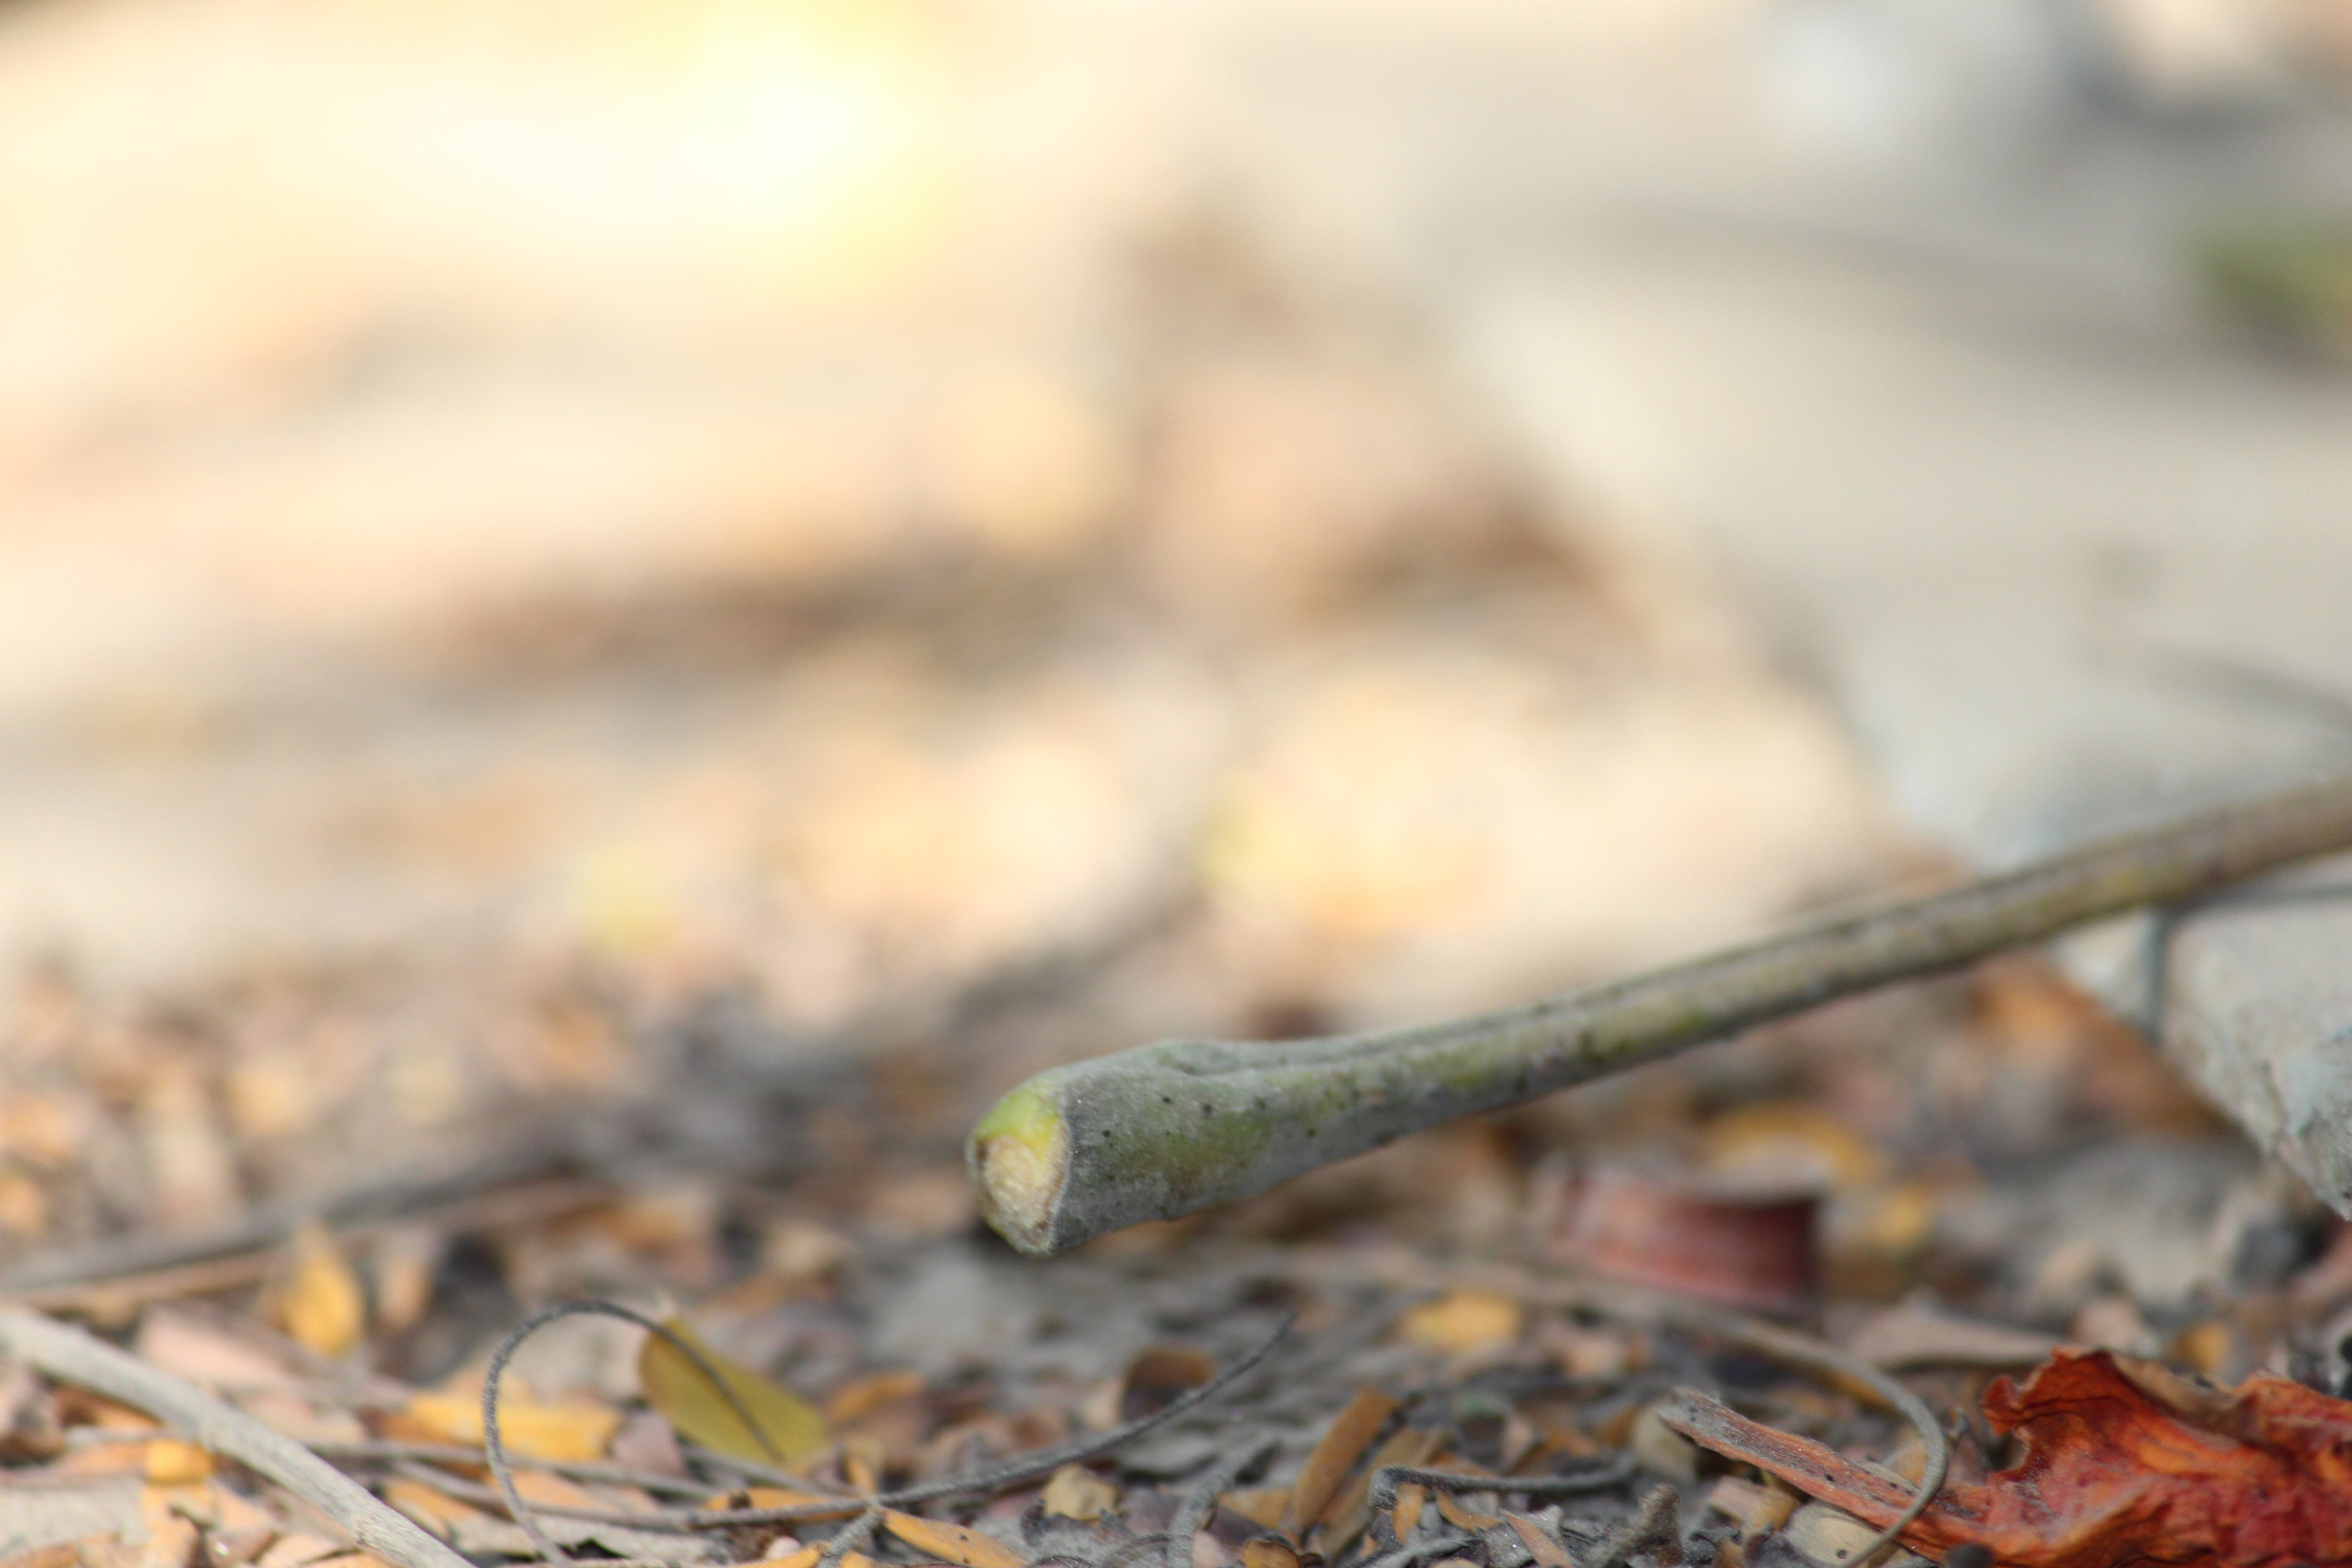 Free stock photo of autumn leaves, blur, dry leaves, fallen leaves